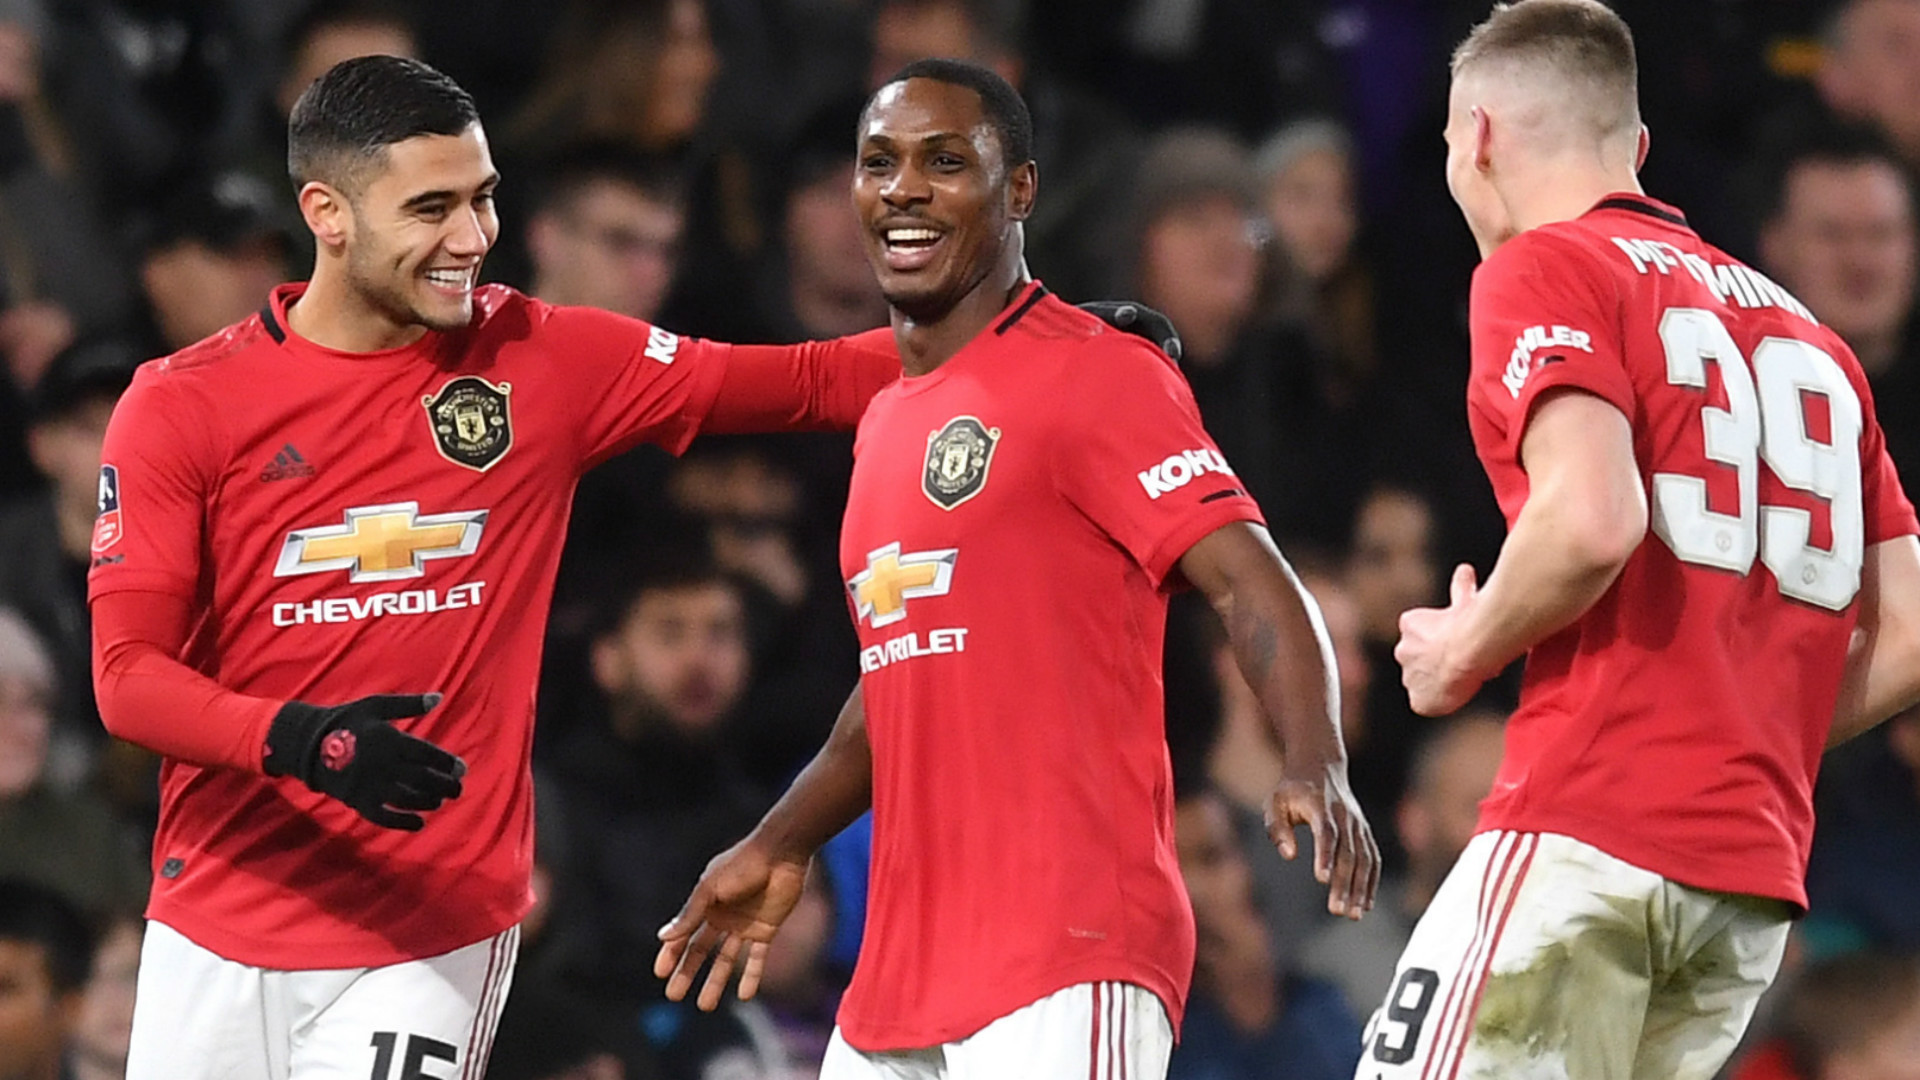 Ole Gunnar Solskjaer passes message of hope to Odion Ighalo regarding permanent Manchester United transfer